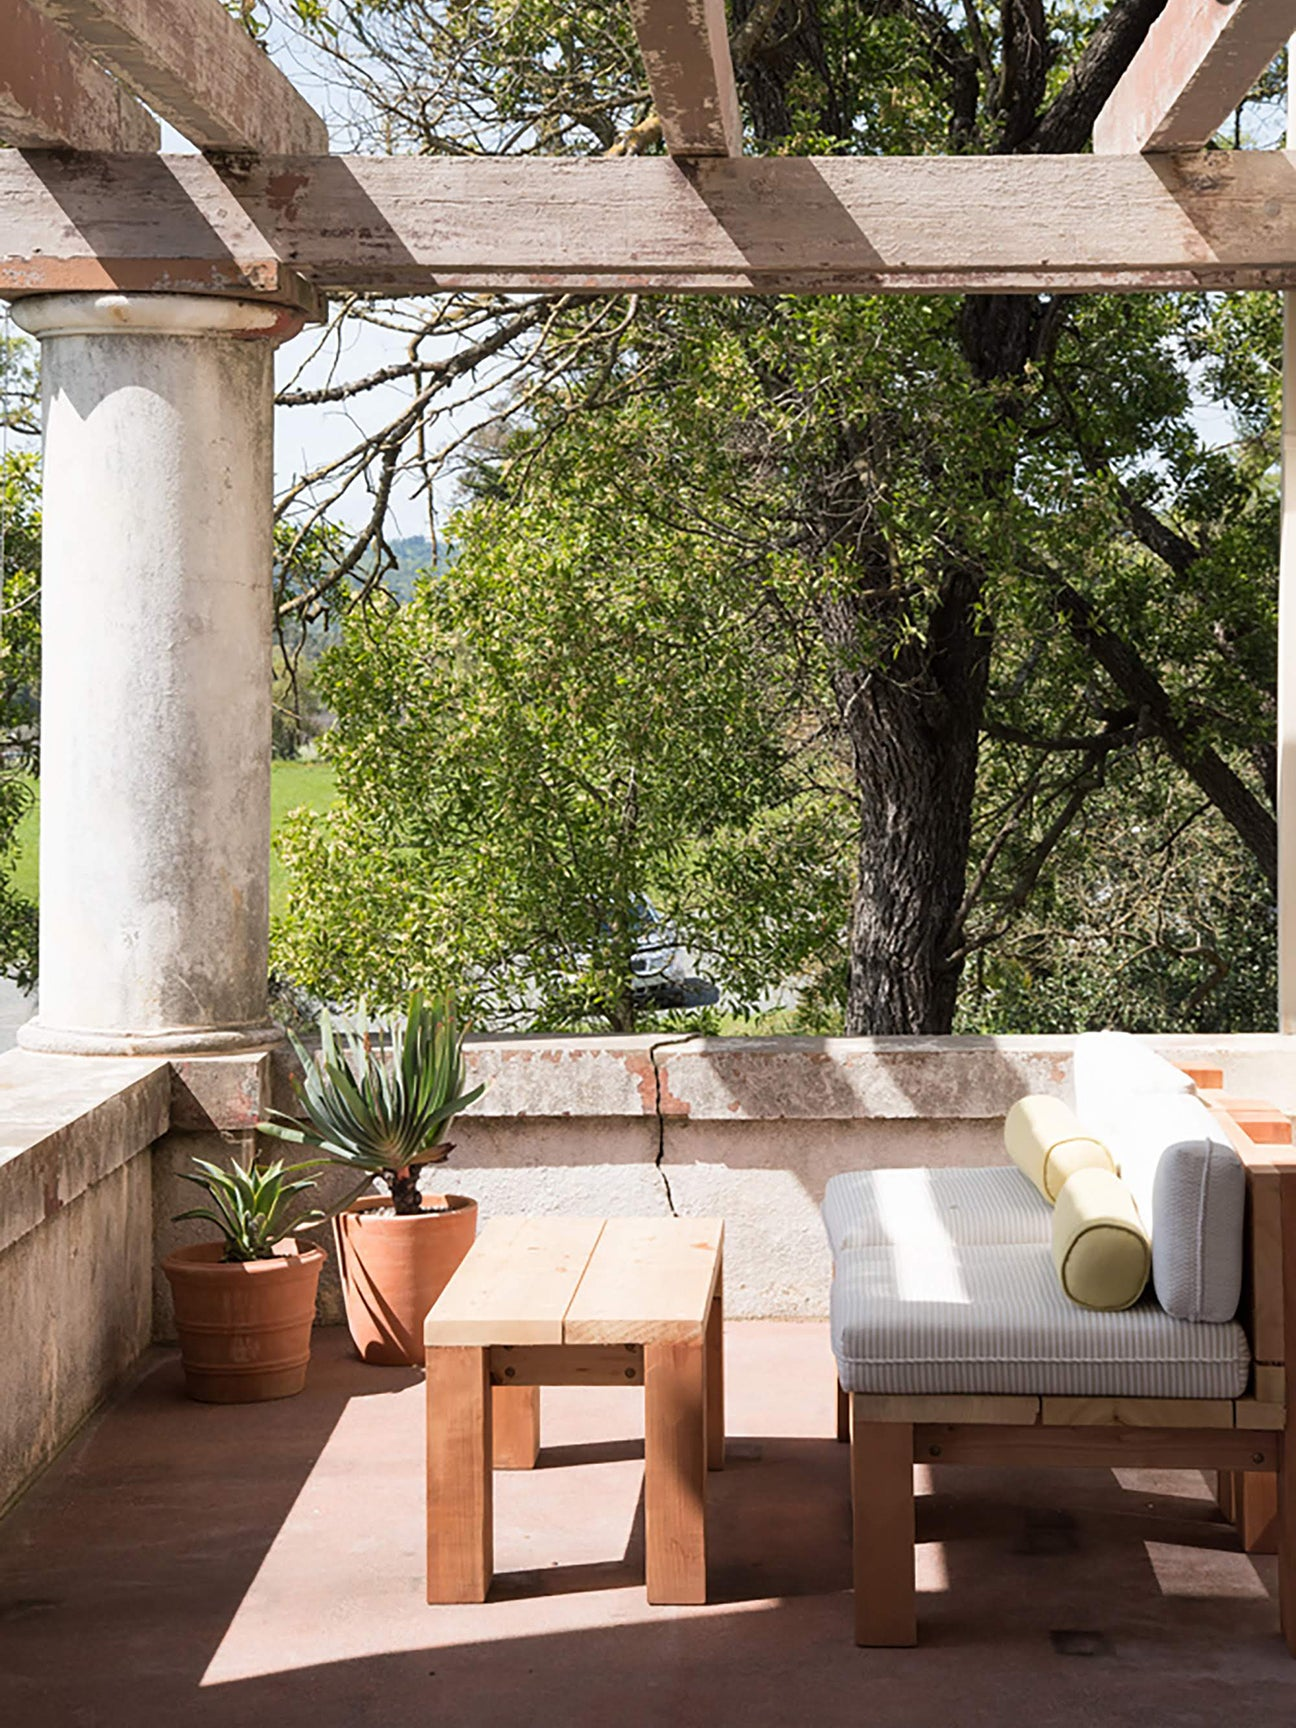 outdoor porch with seating area